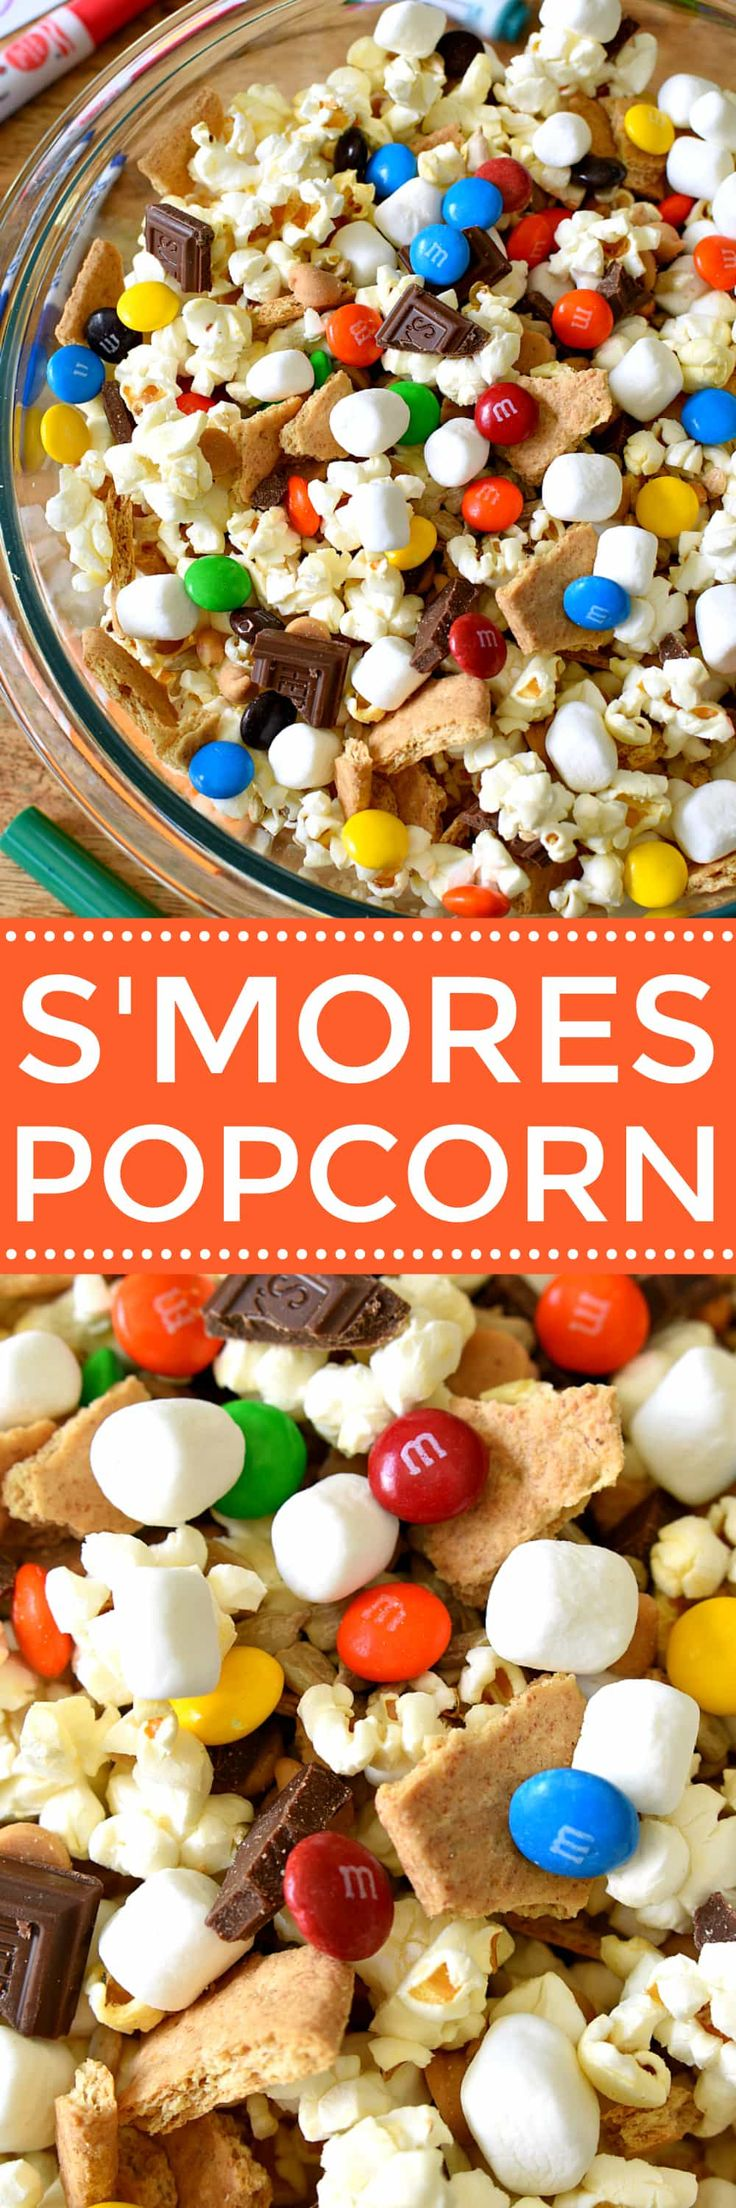 S'mores Popcorn and Fruit Shoot juice drinks - 2 simple ways to celebrate childhood and let kids just be kids! (Snack Mix)